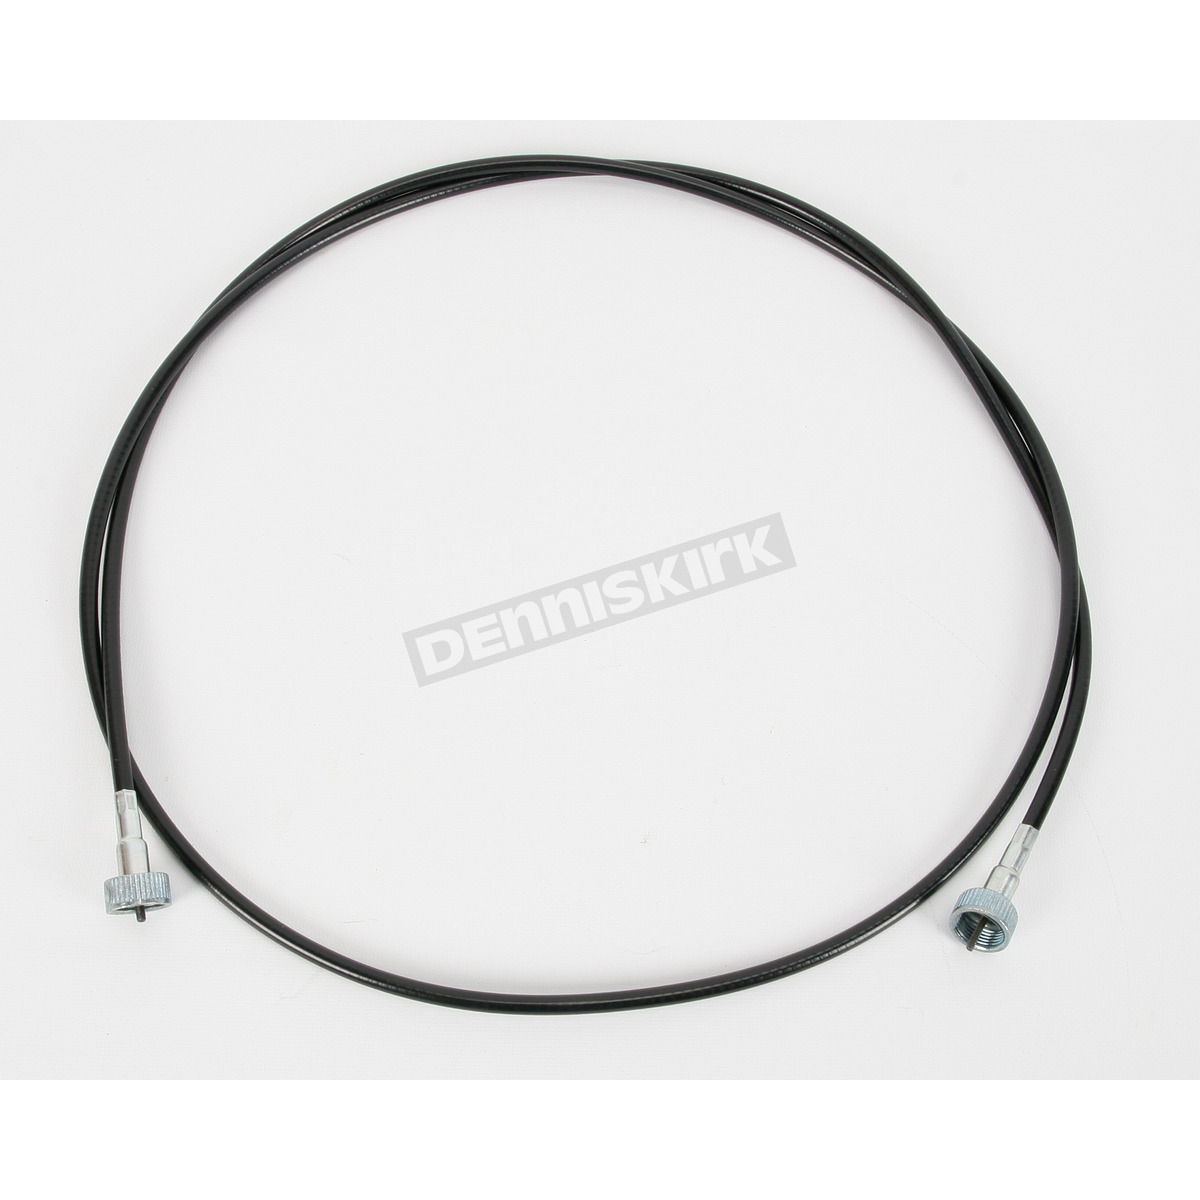 Parts Unlimited Speedometer Cable For Polaris Indy 05 9783 Wiring Diagram 1991 Rxl